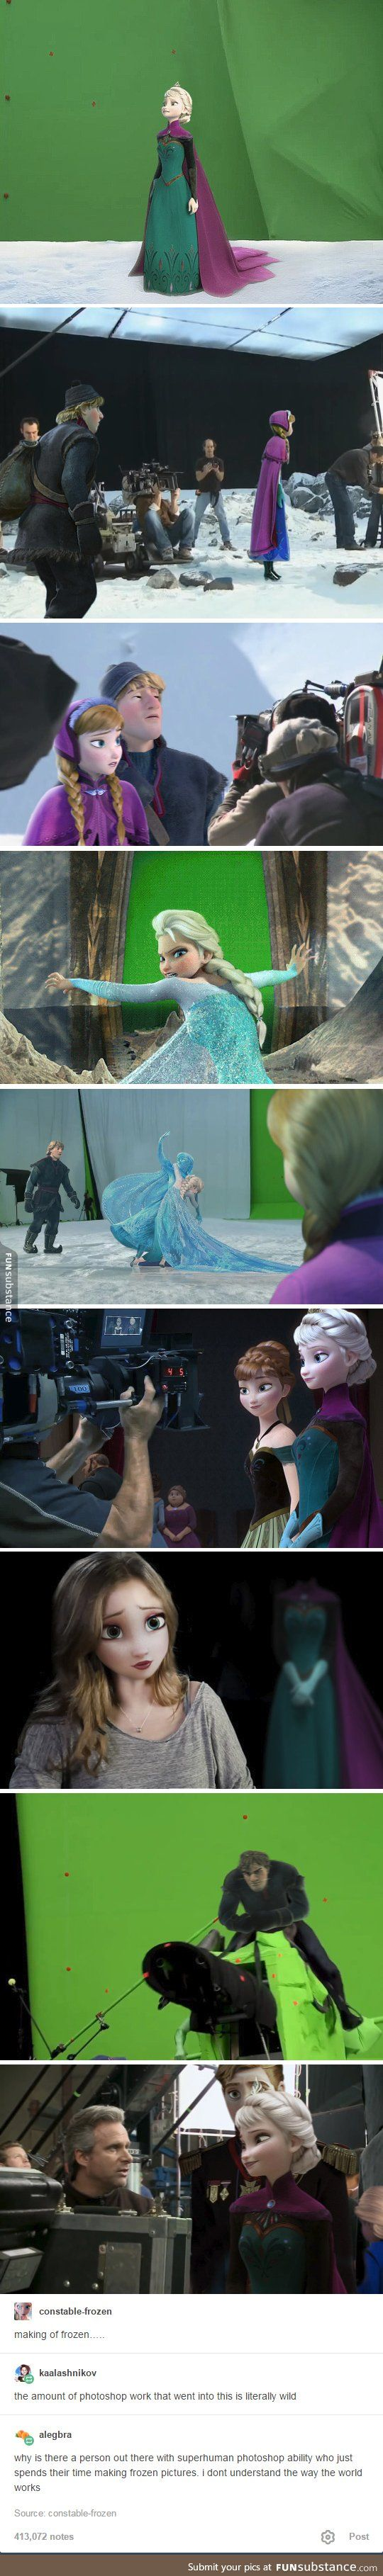 Behind the scenes of Frozen